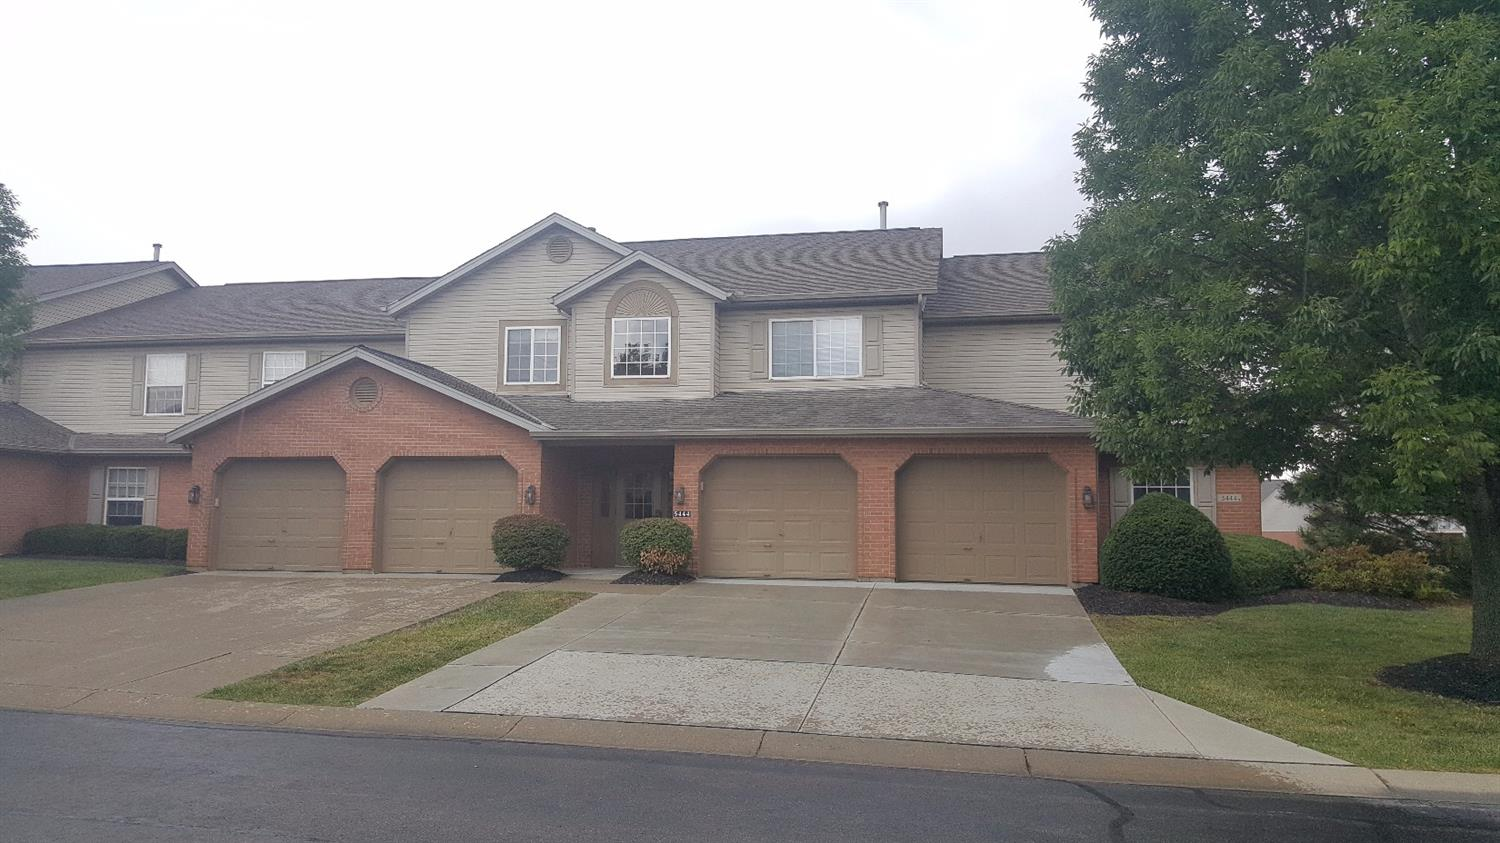 Property for sale at 5444 Harbourwatch Way Unit: 204, Deerfield Twp.,  OH 45040